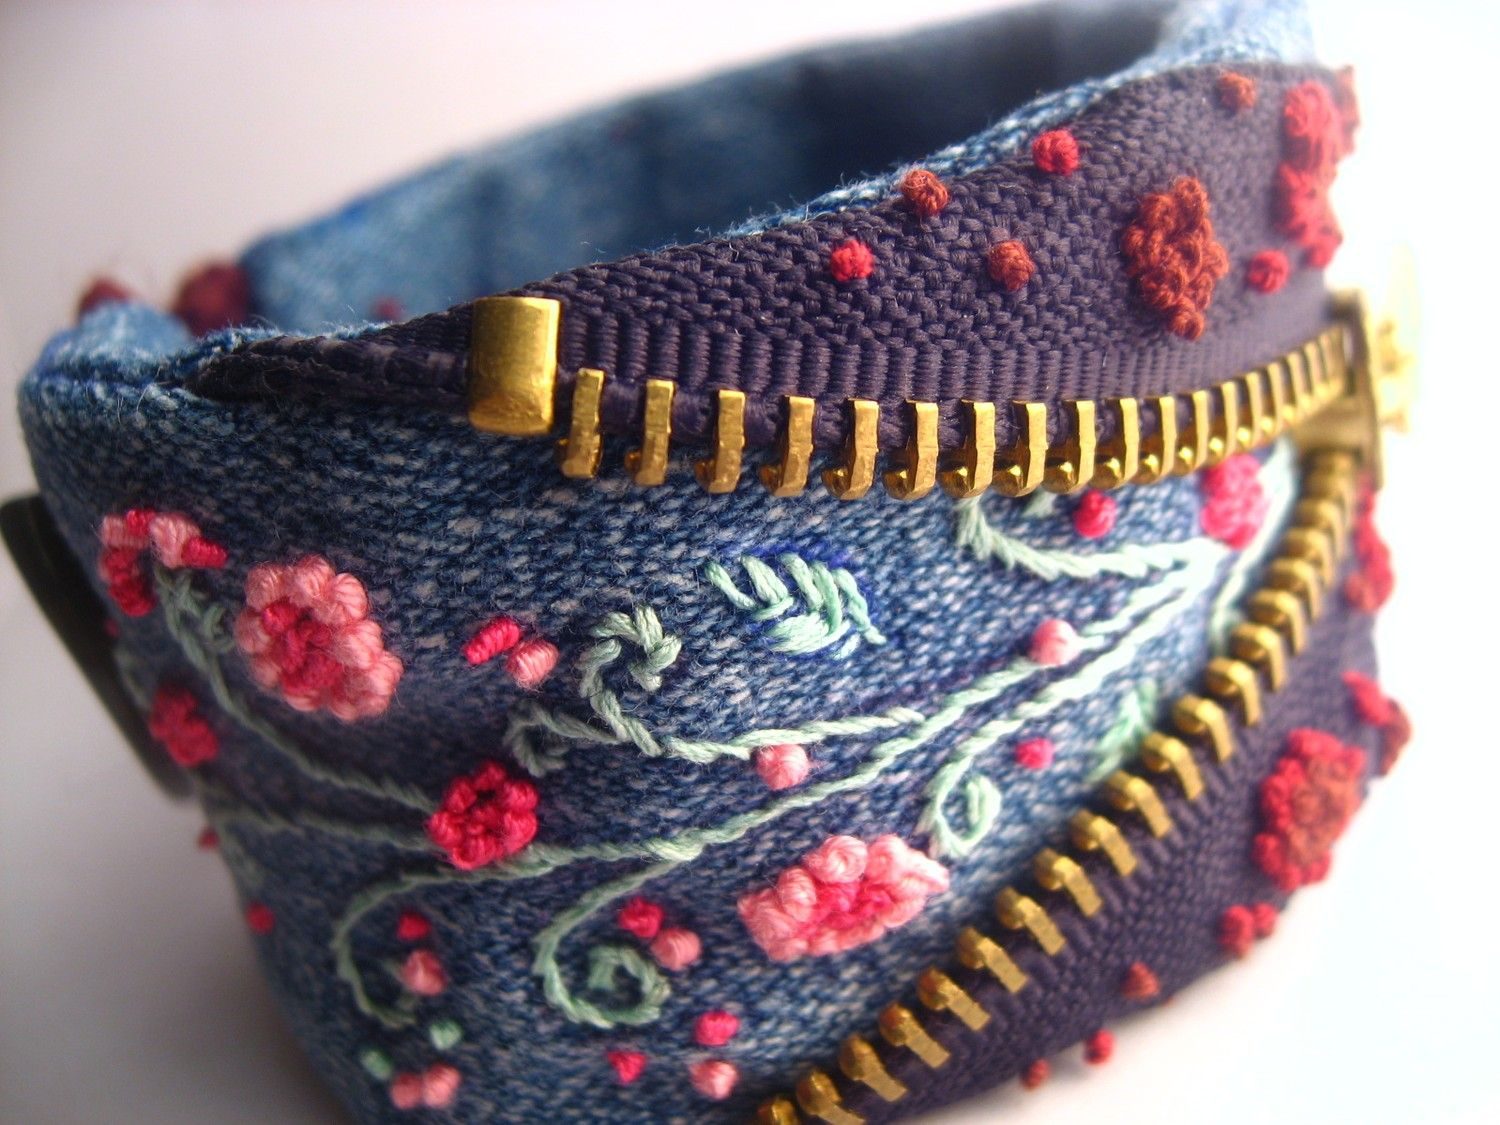 embroidered cuff by Krista R.